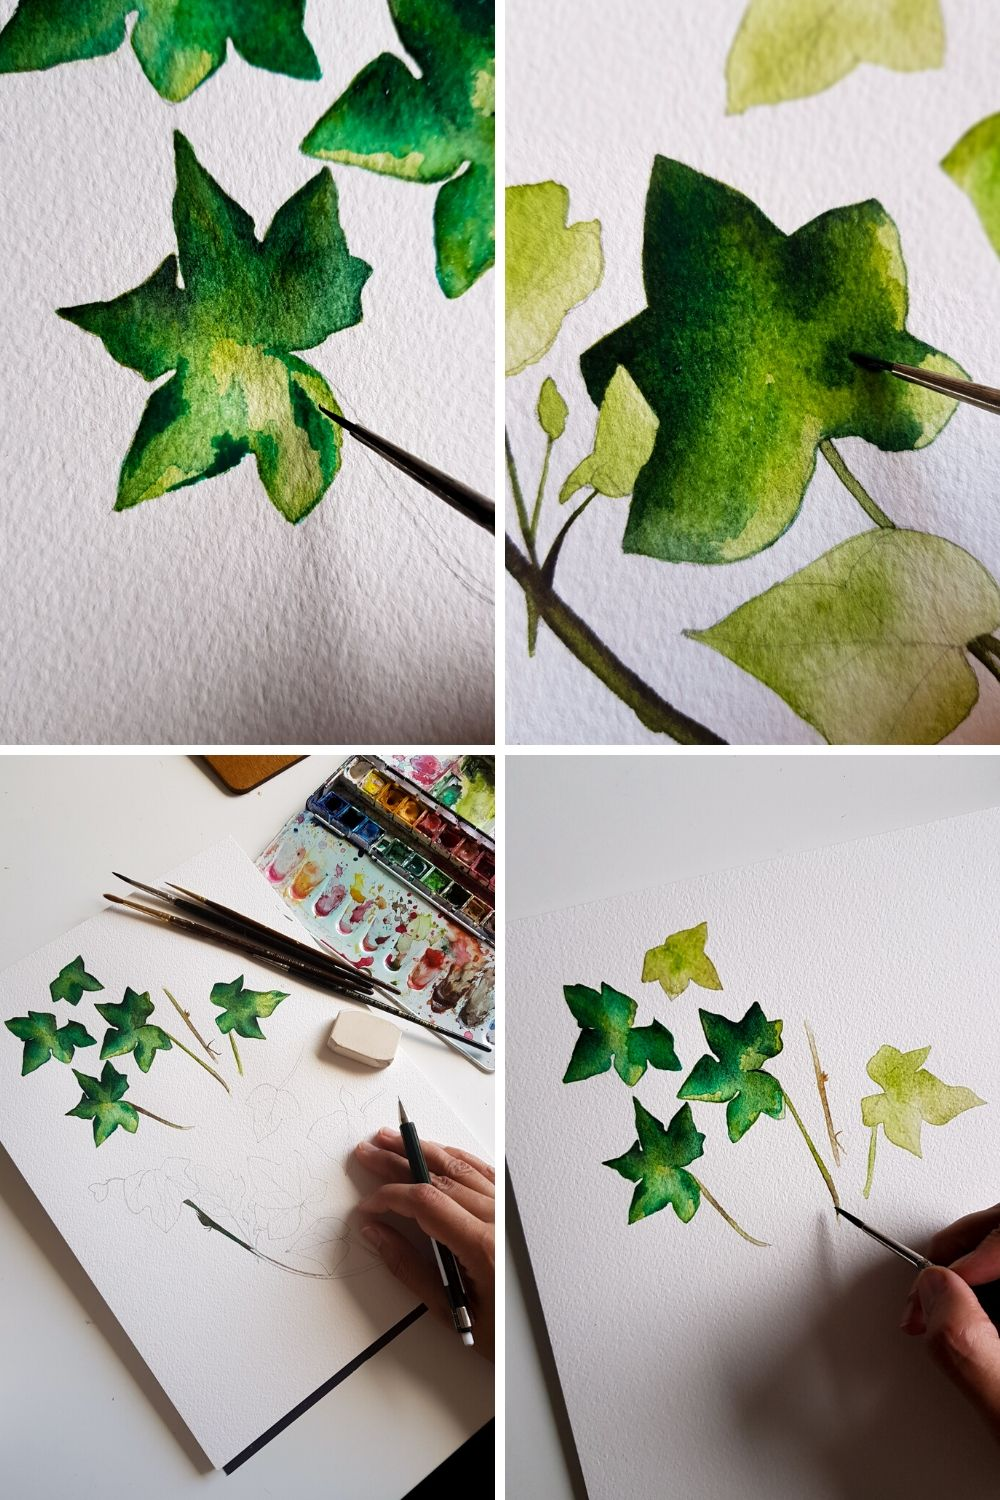 Watercolour of some green leaves for some wedding invitation artwork